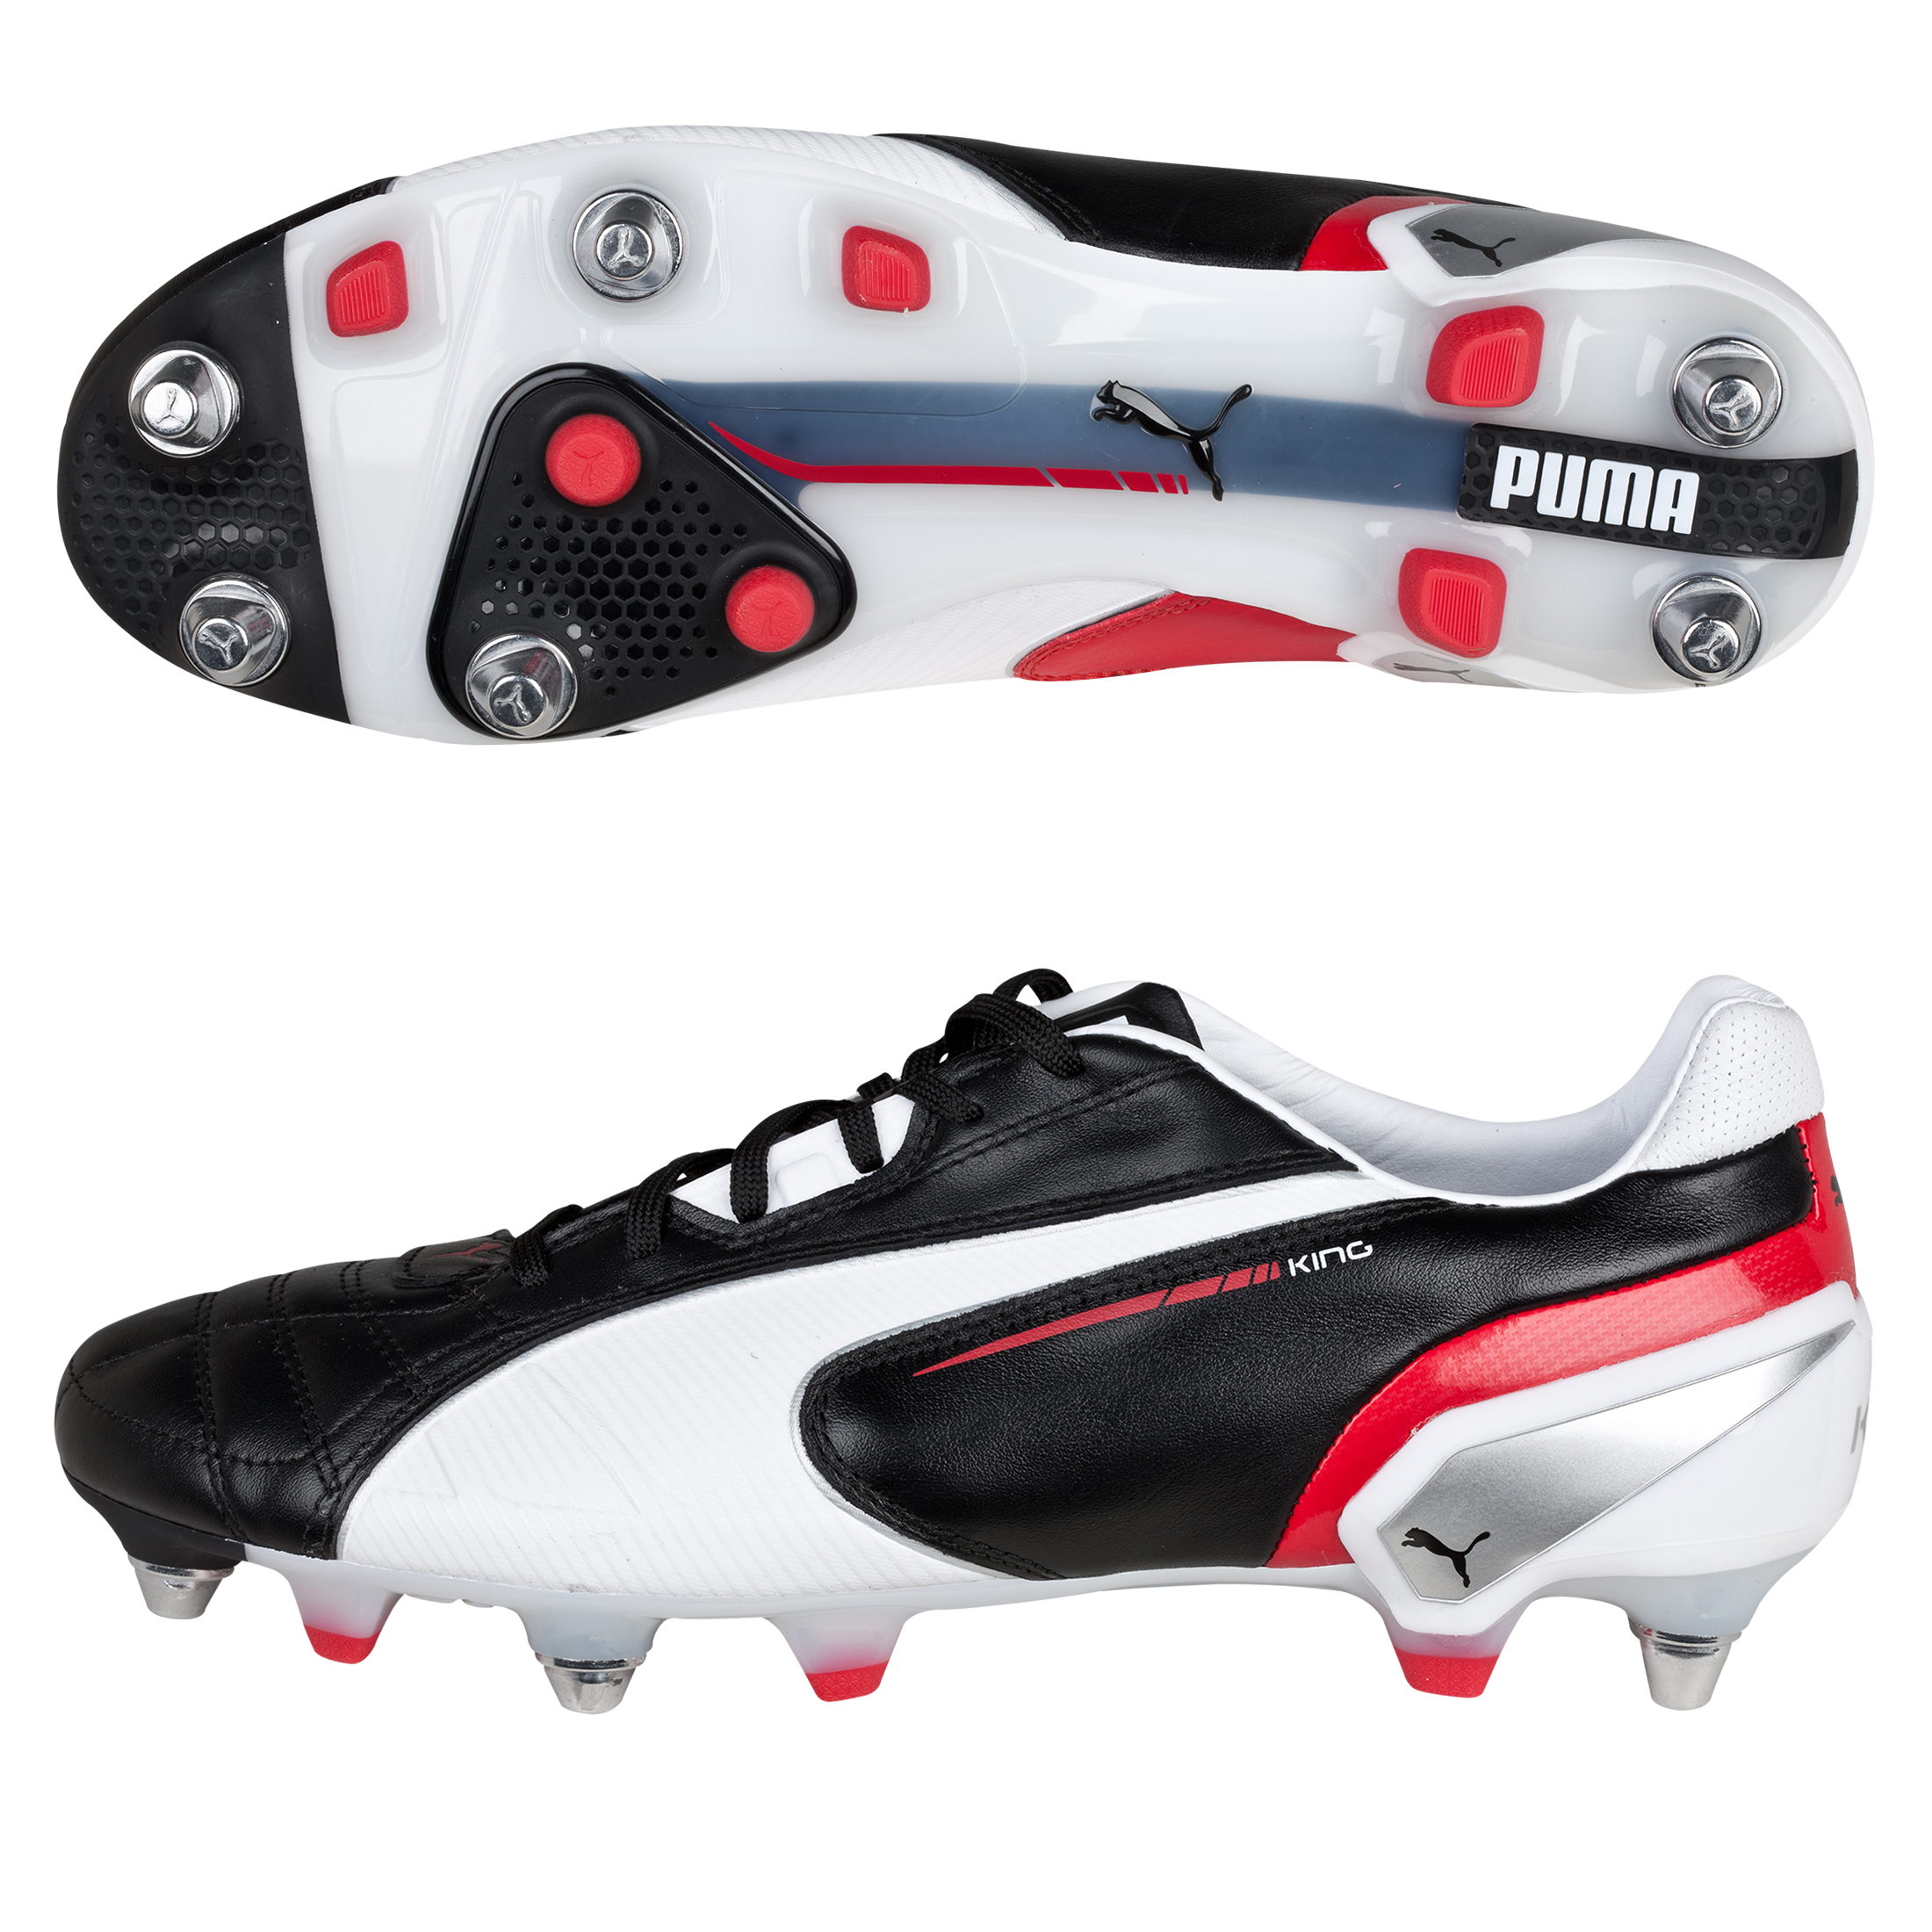 Puma King Mixed Soft Ground Football Boots - Black/White/Ribbon Red